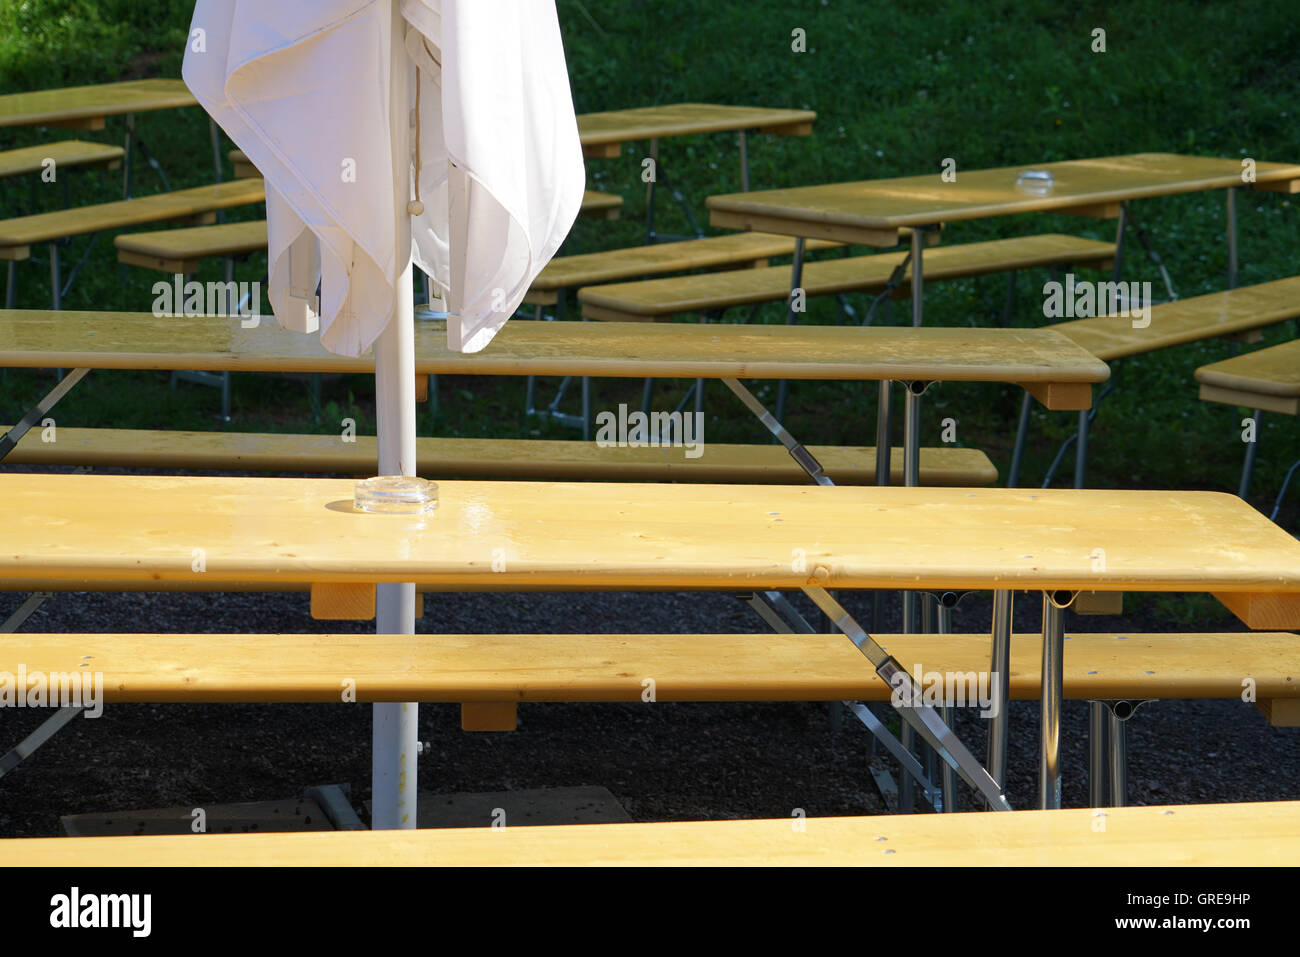 Beer Garden Beer Table Set With Sunshade After Rain & Beer Garden Beer Table Set With Sunshade After Rain Stock Photo ...